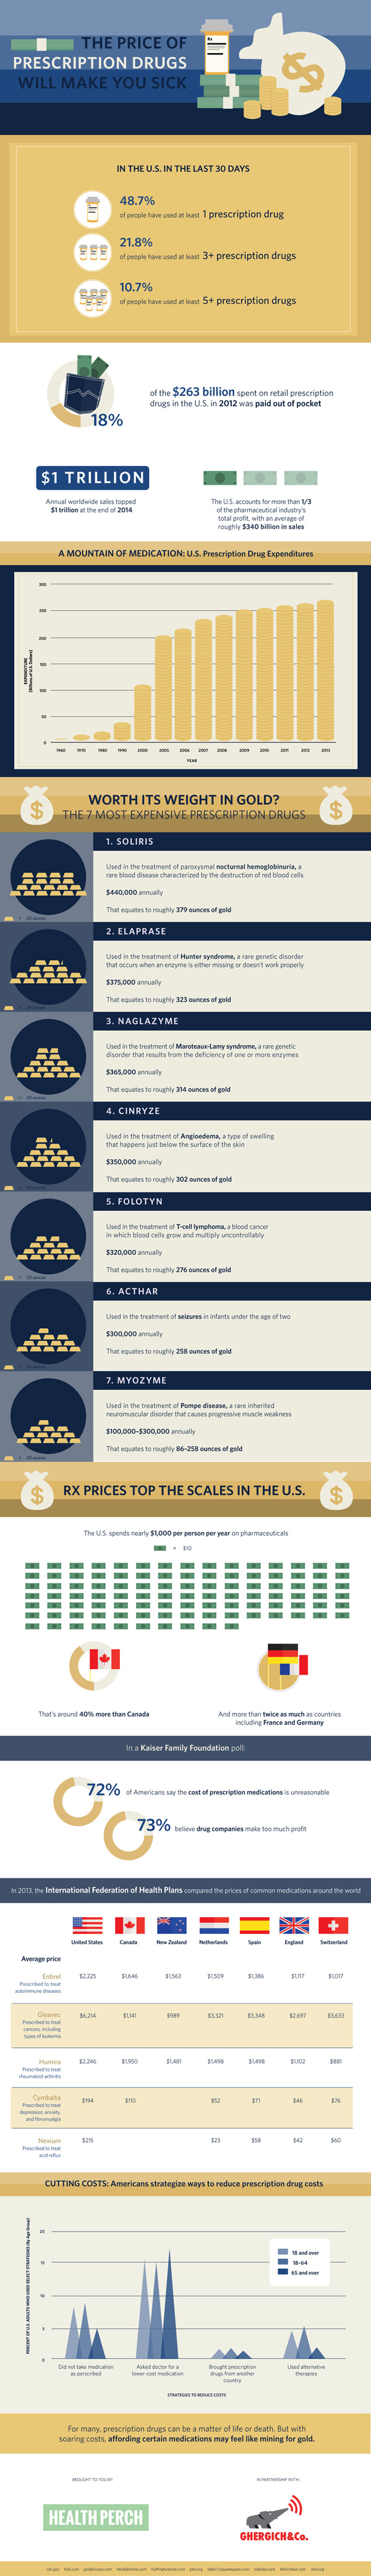 The-Price-of-Prescription-Drugs infographic